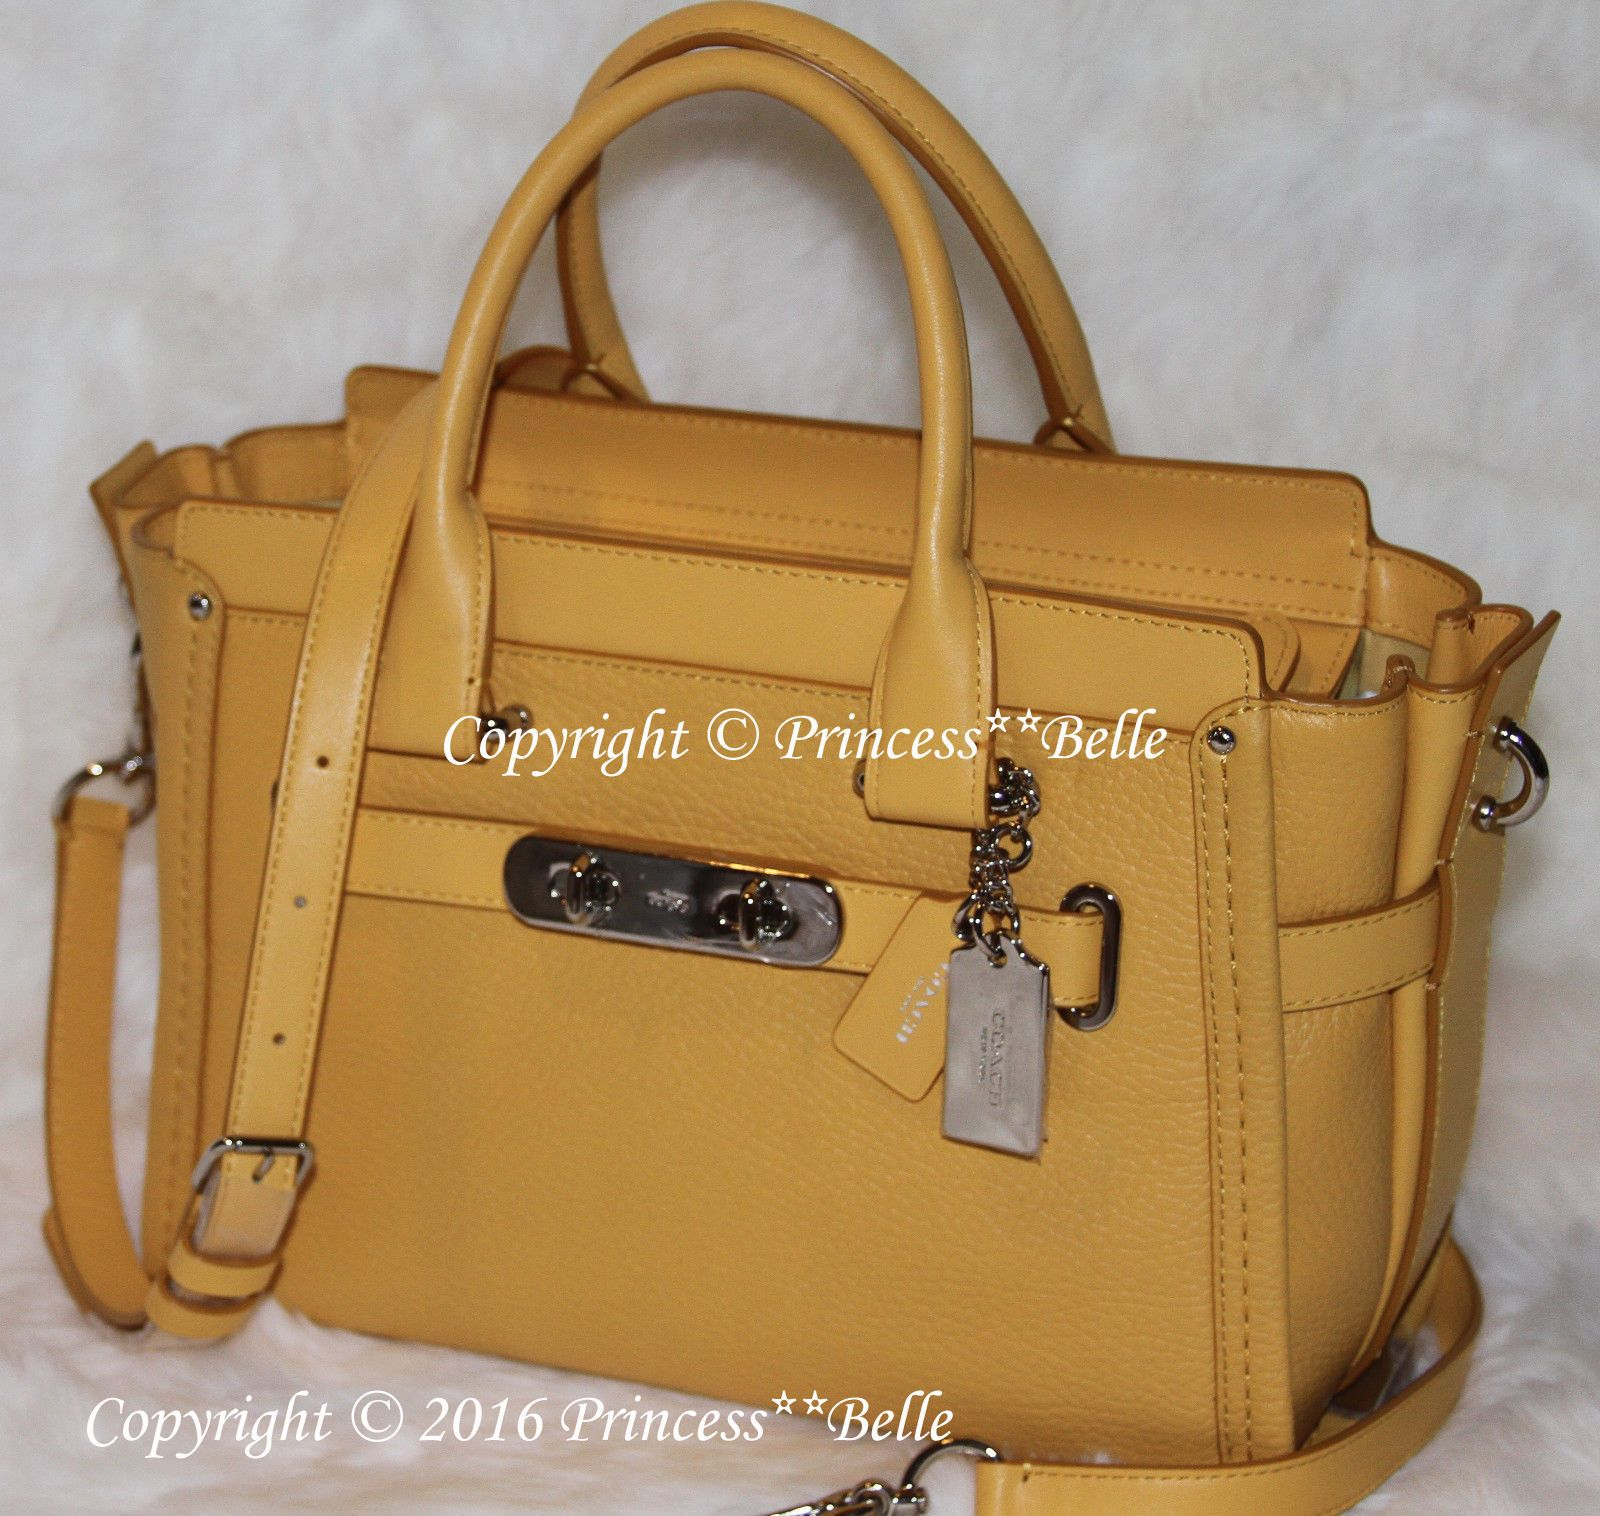 efe57be88fb7 ... purchase coach swagger 27 satchel leather bag purse handbag canary  yellow 450 329.99 f2c23 44adf